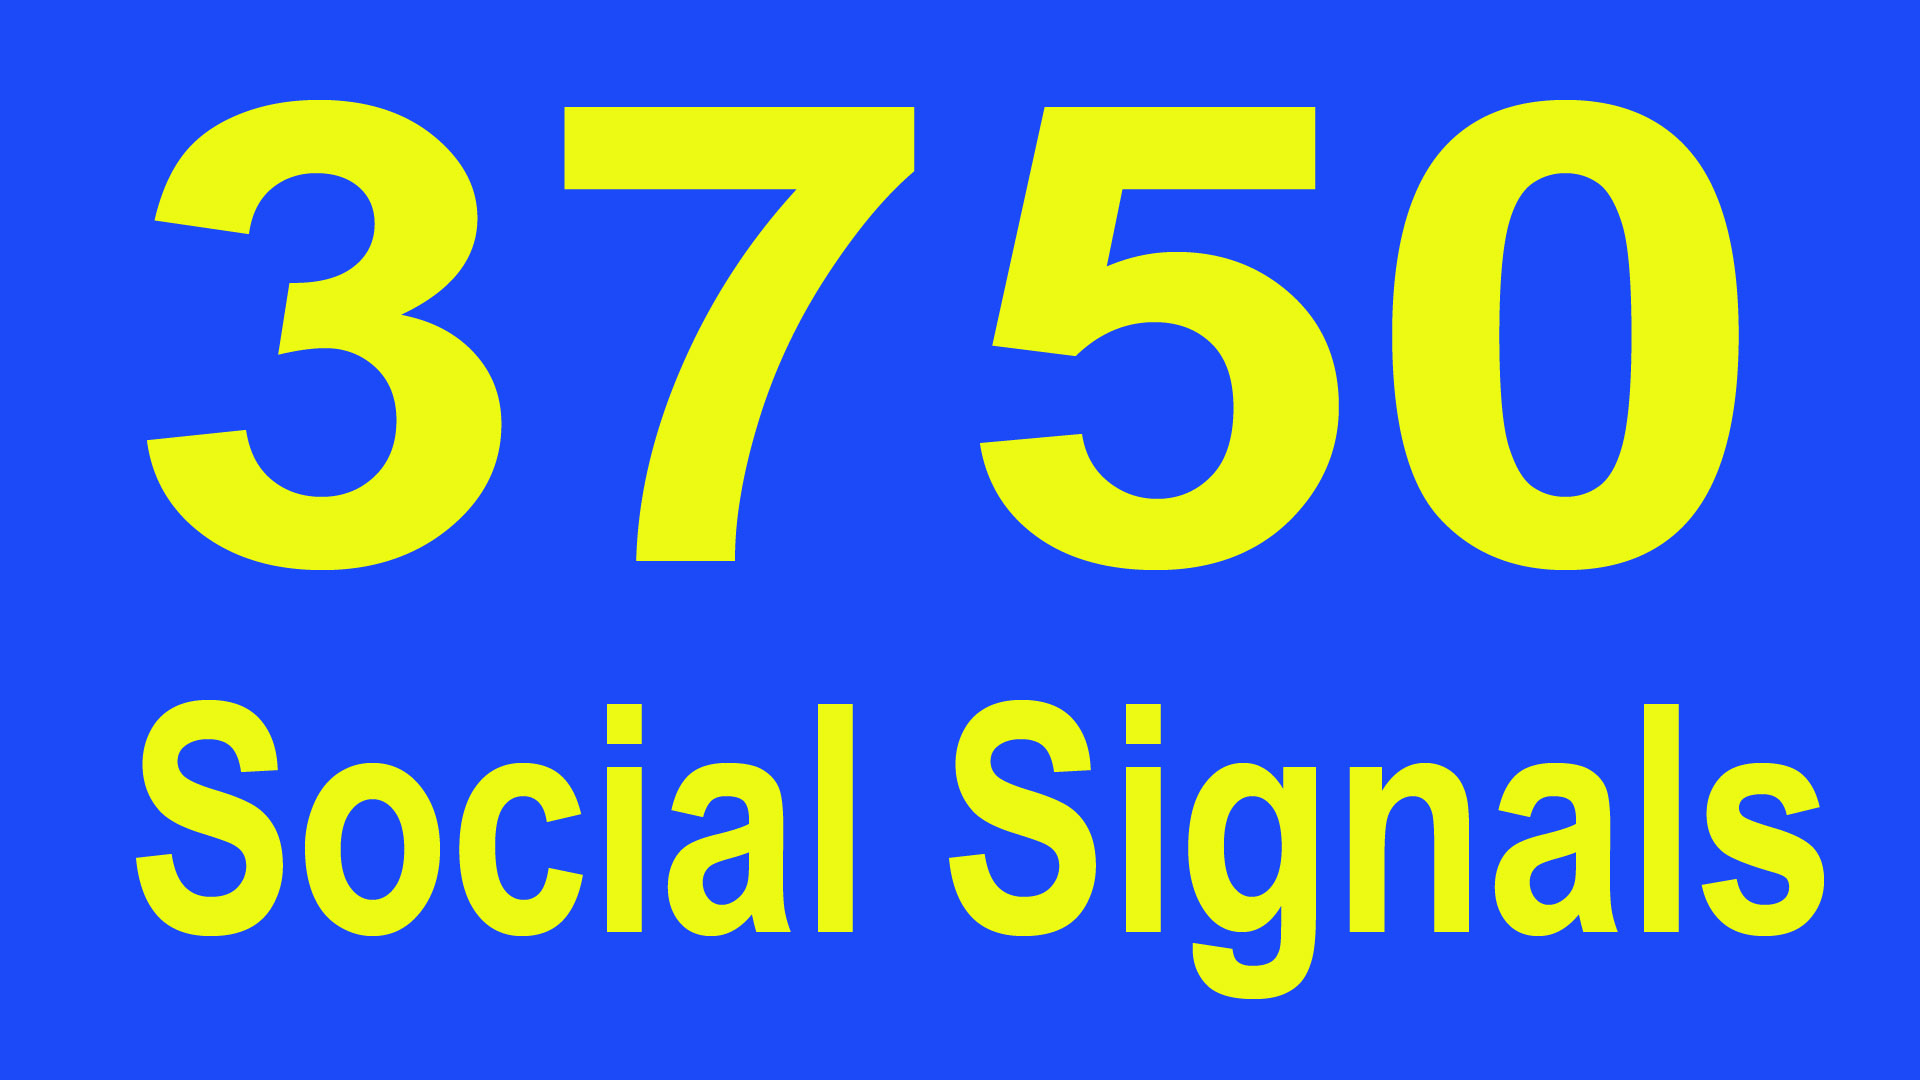 Powerfully built 3750 Social Shares Signals to heavy SEO help,  Best on Monster Backlinks